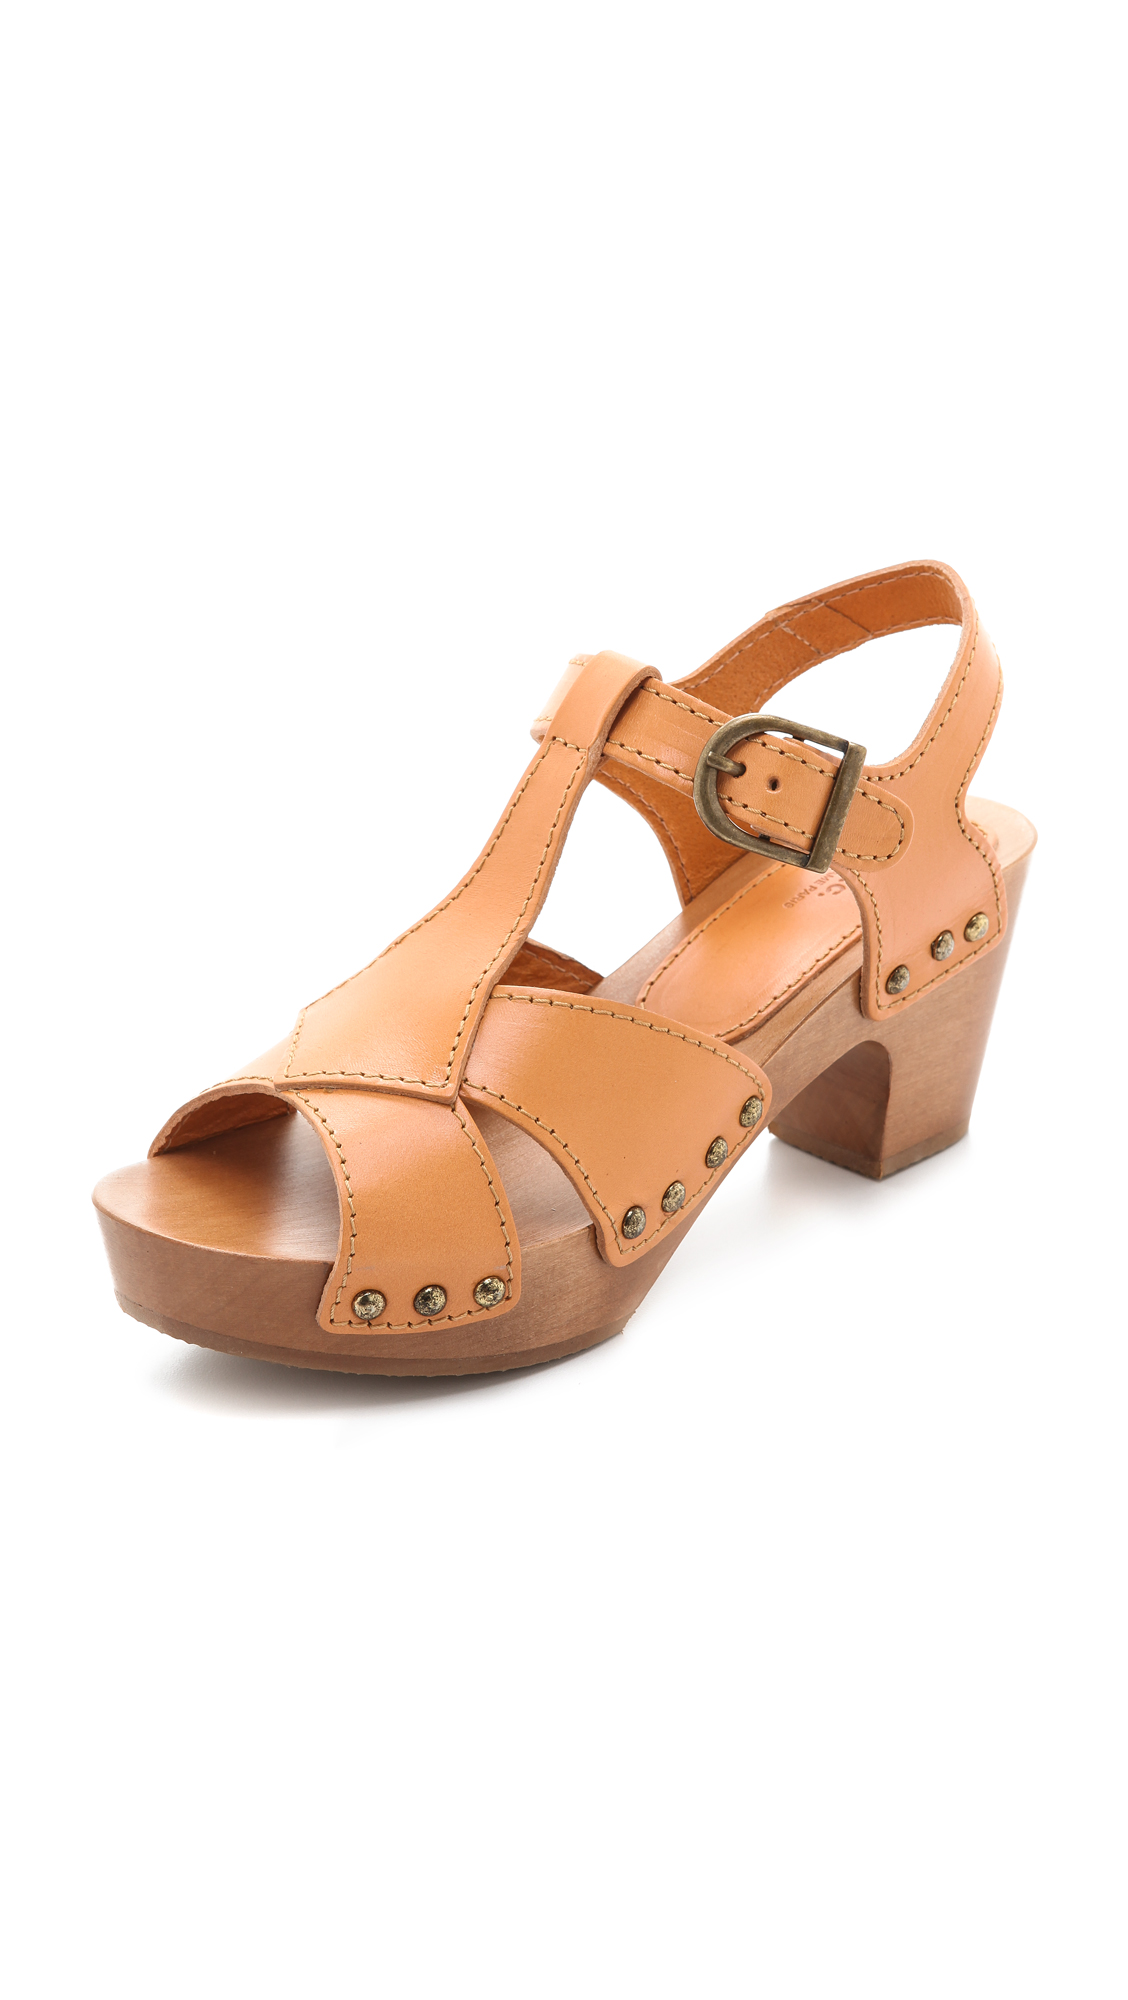 A P C Slingback Clog Sandals In Brown Beige Lyst